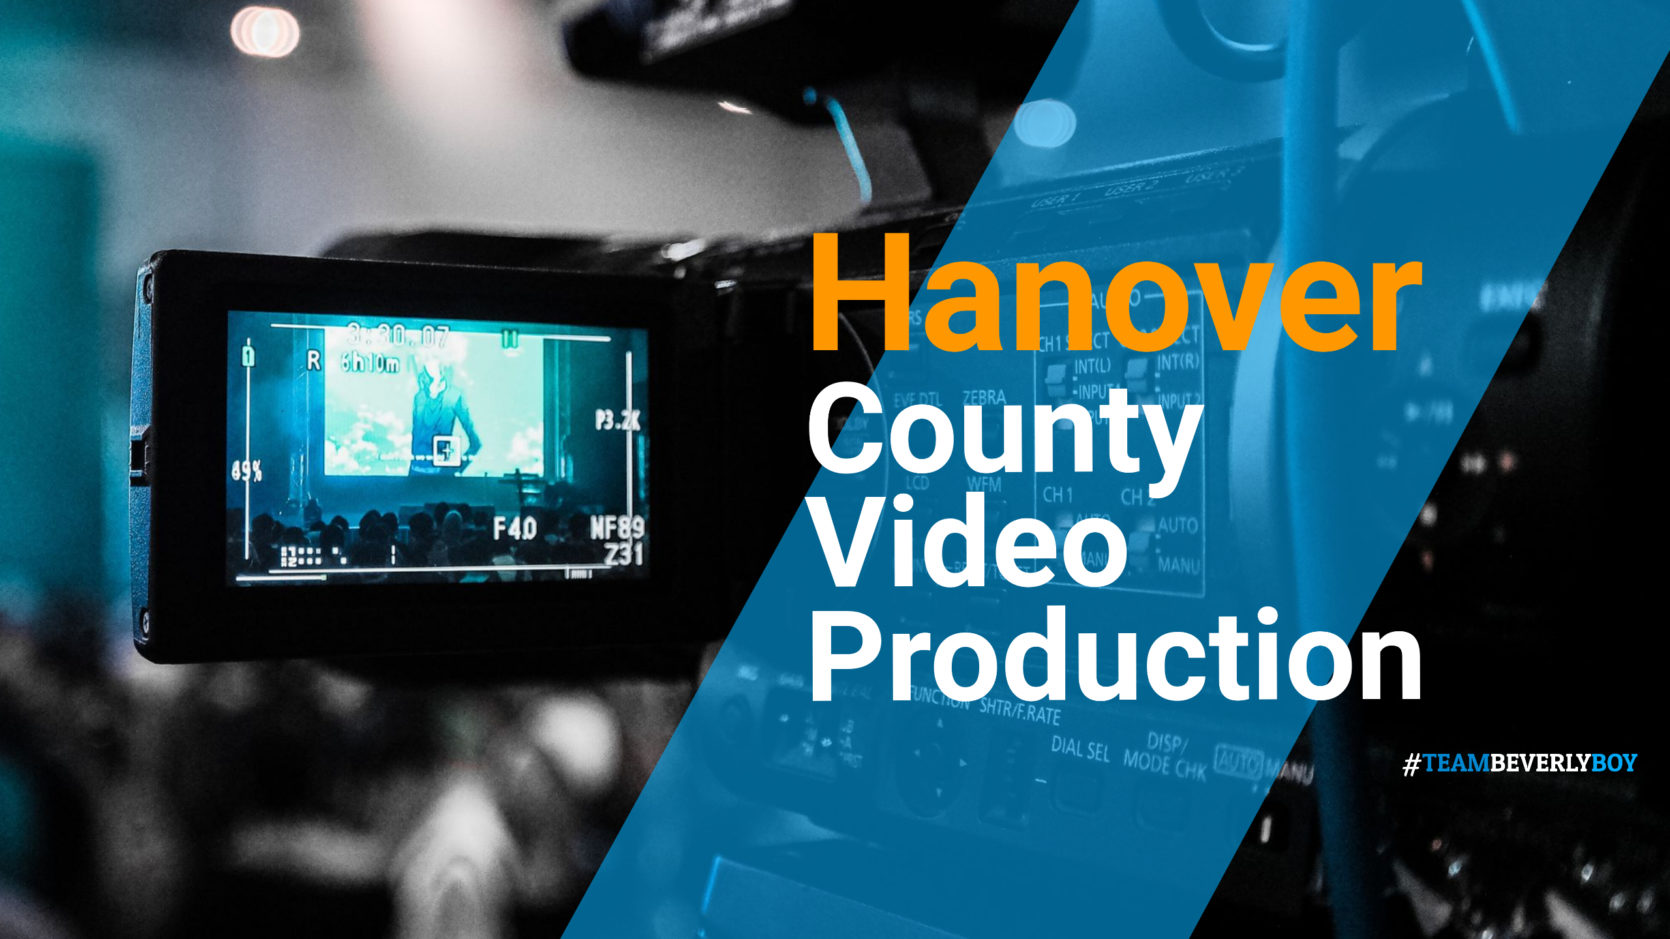 Hanover County Video Production